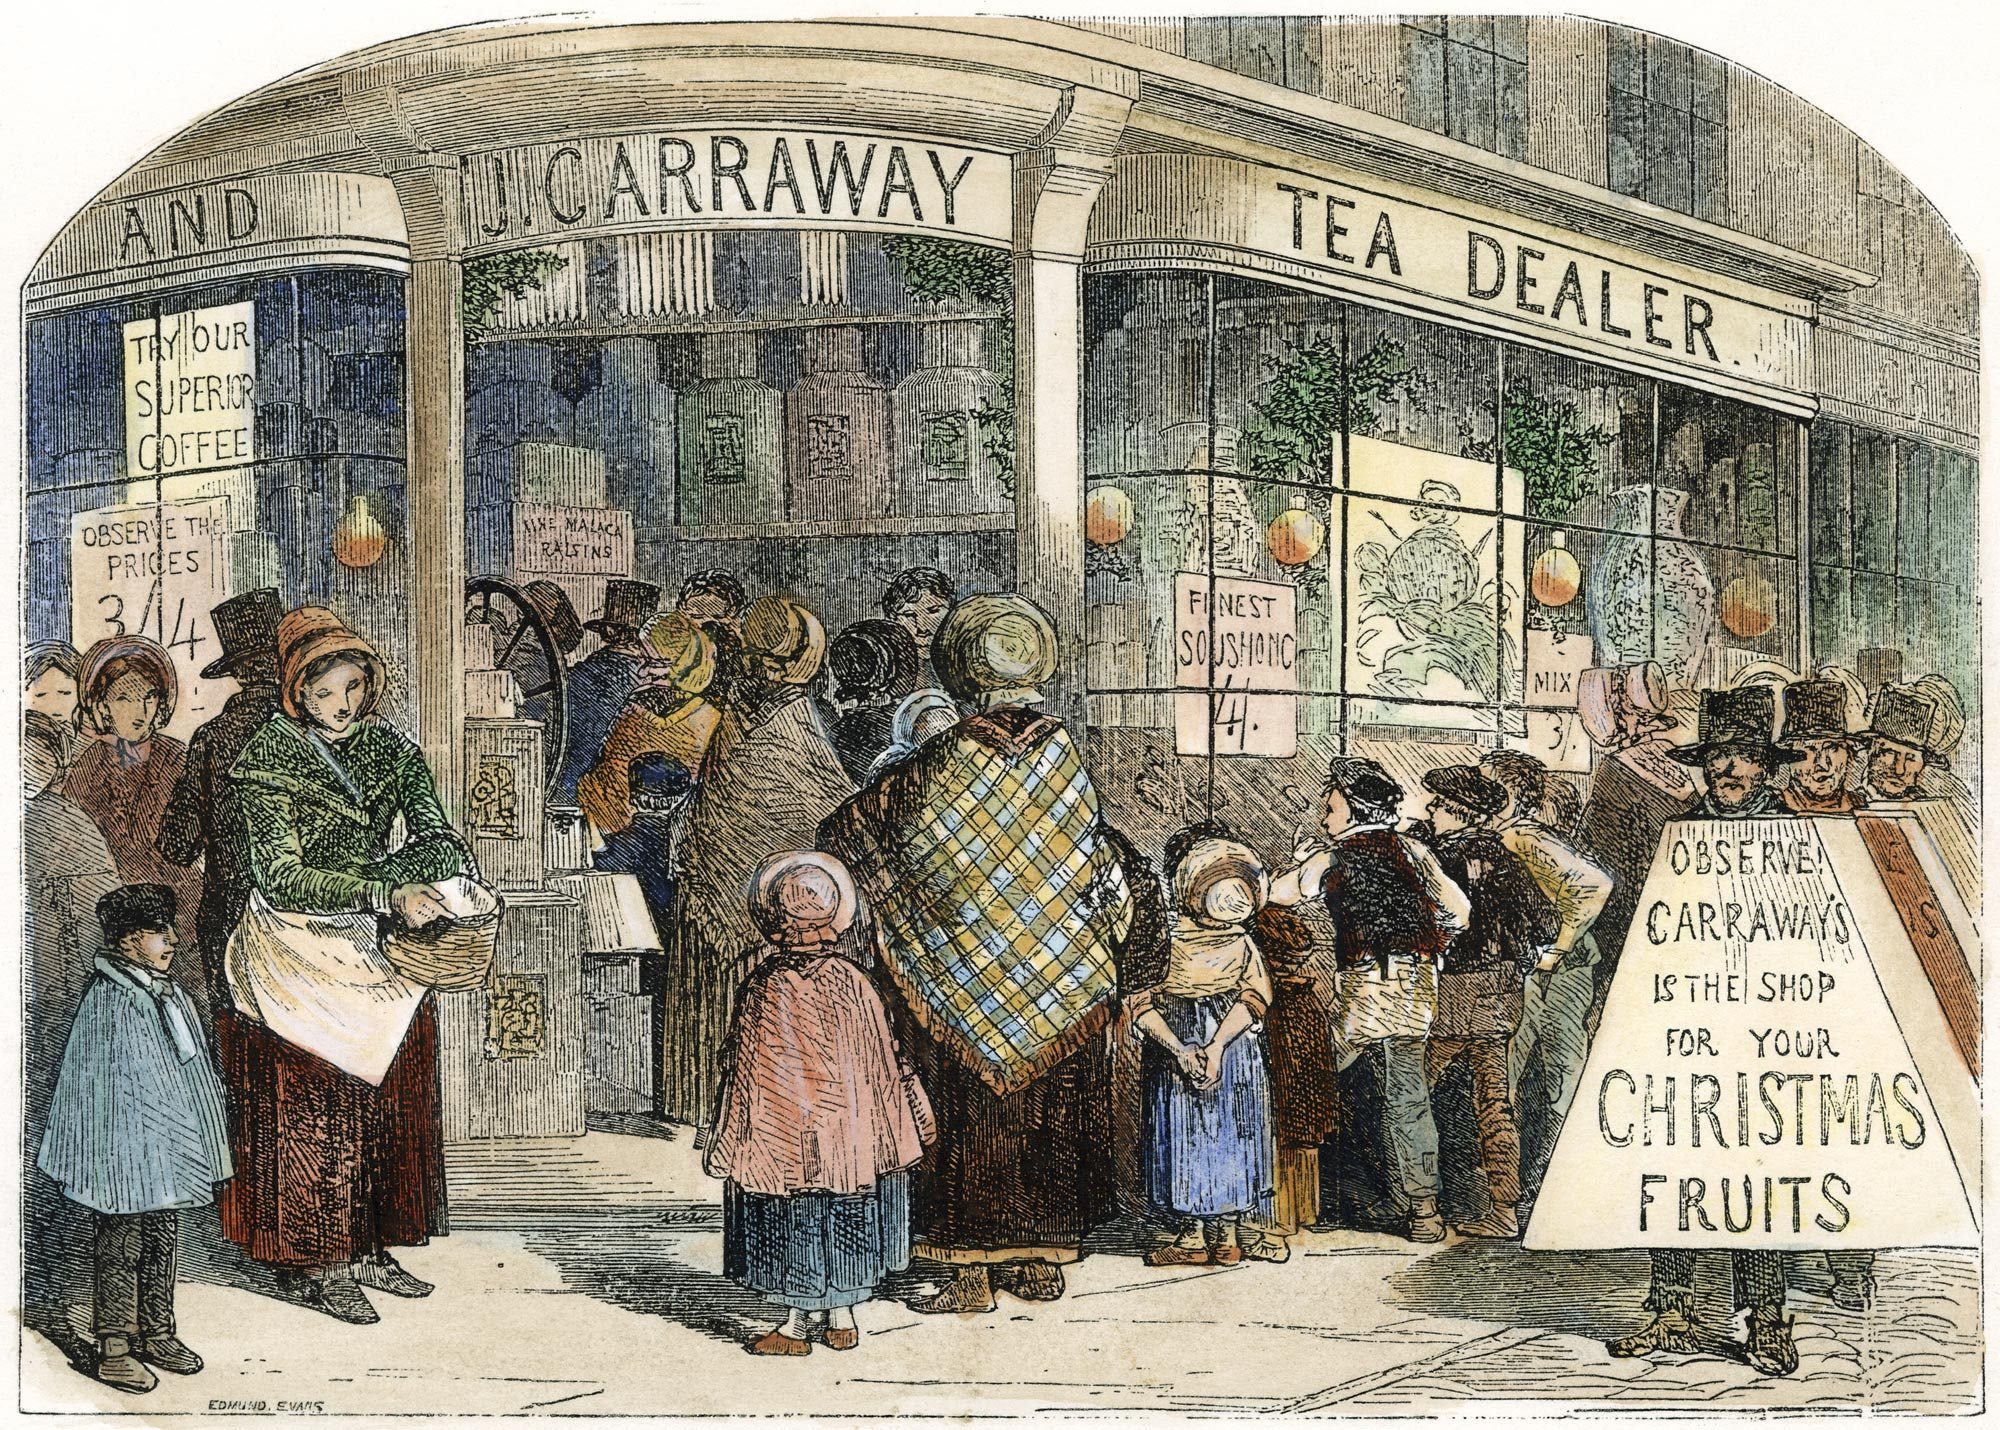 The grocer's shop at Christmas by Edmund Evans